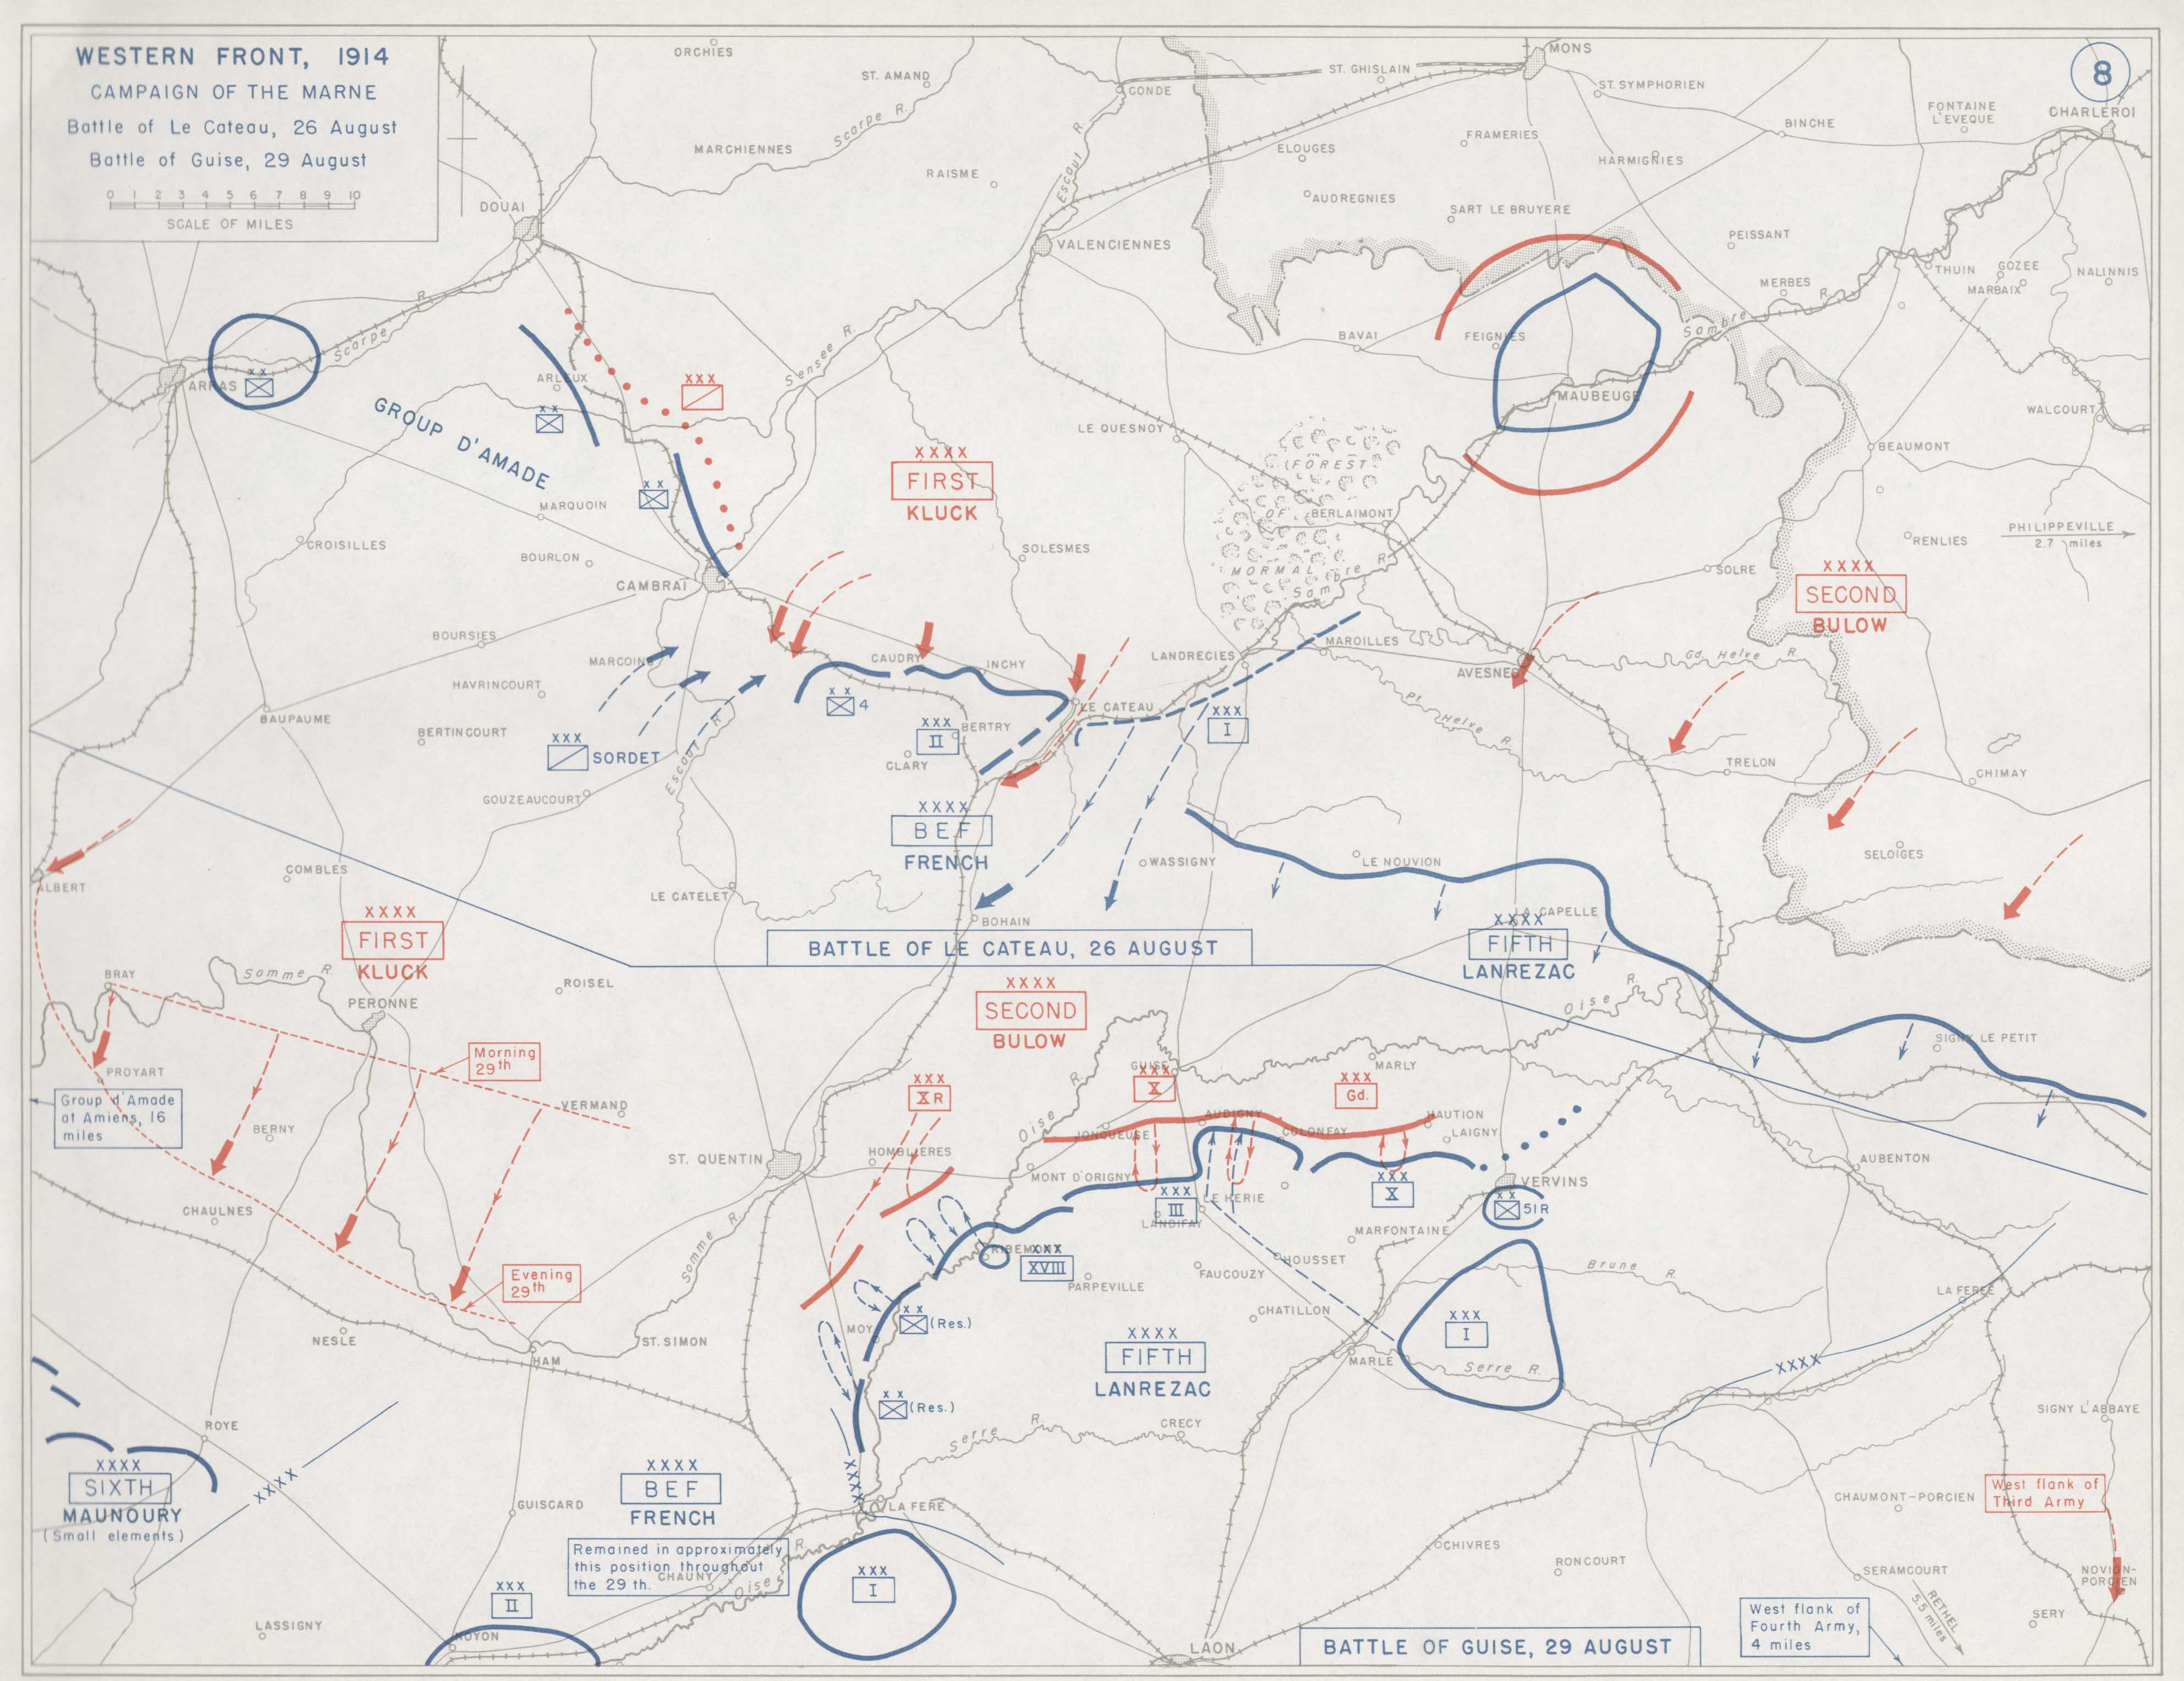 First world war battlefield maps western front battlefield maps western front gumiabroncs Image collections